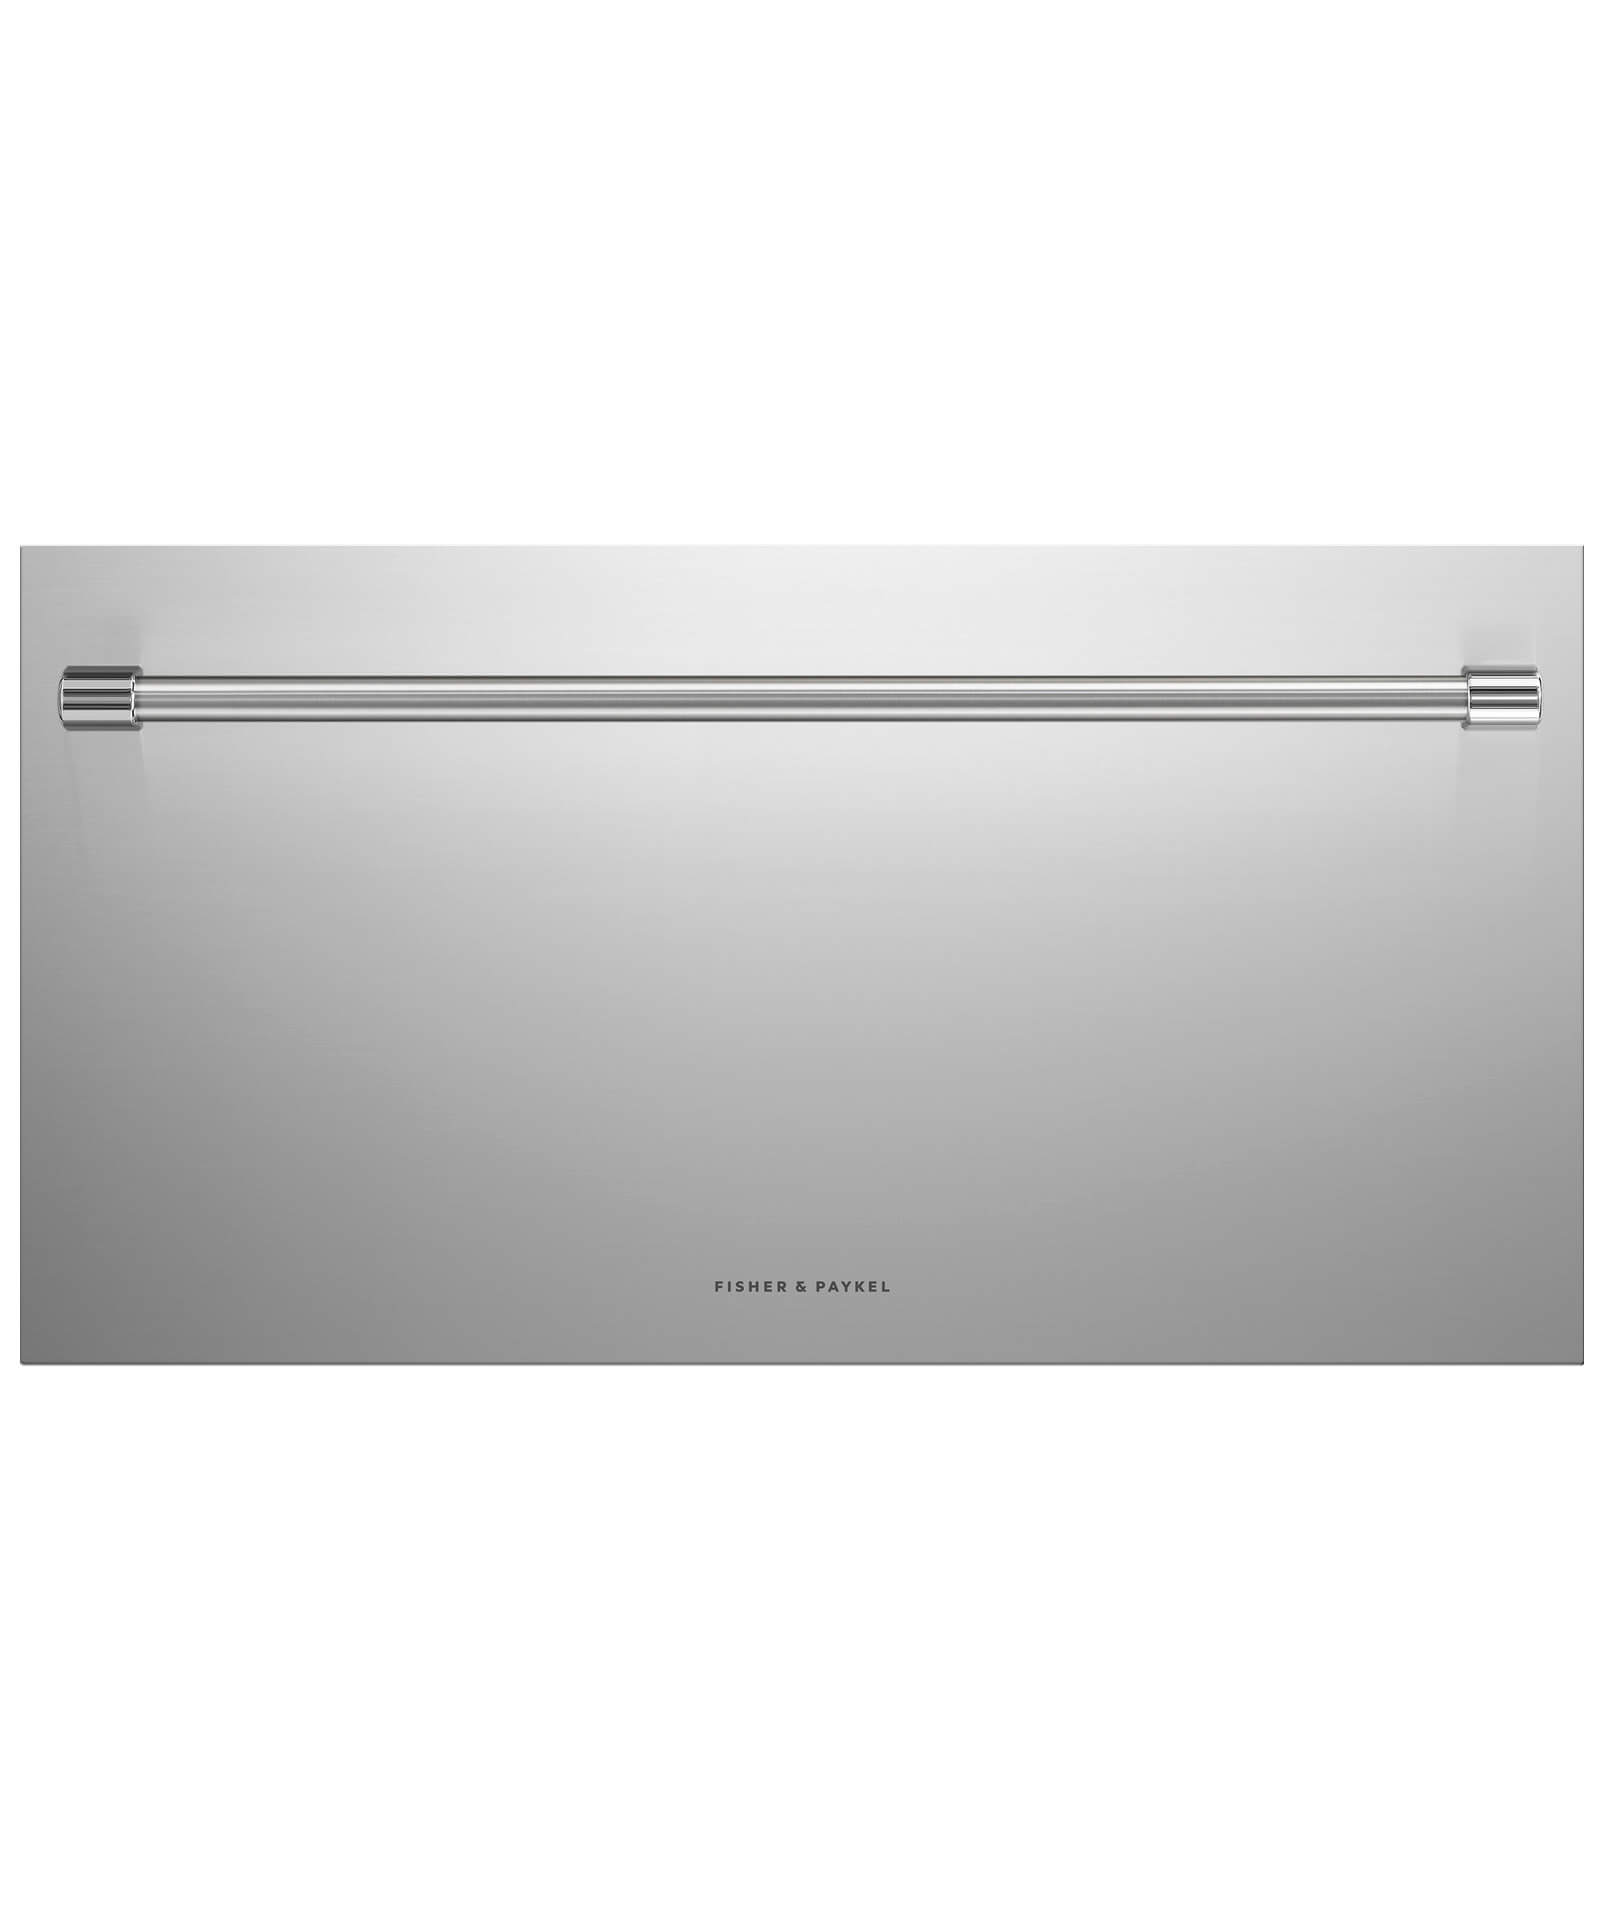 "RB36S25MKIW1 - 36"" CoolDrawer™ Multi-temperature Drawer - 21322"